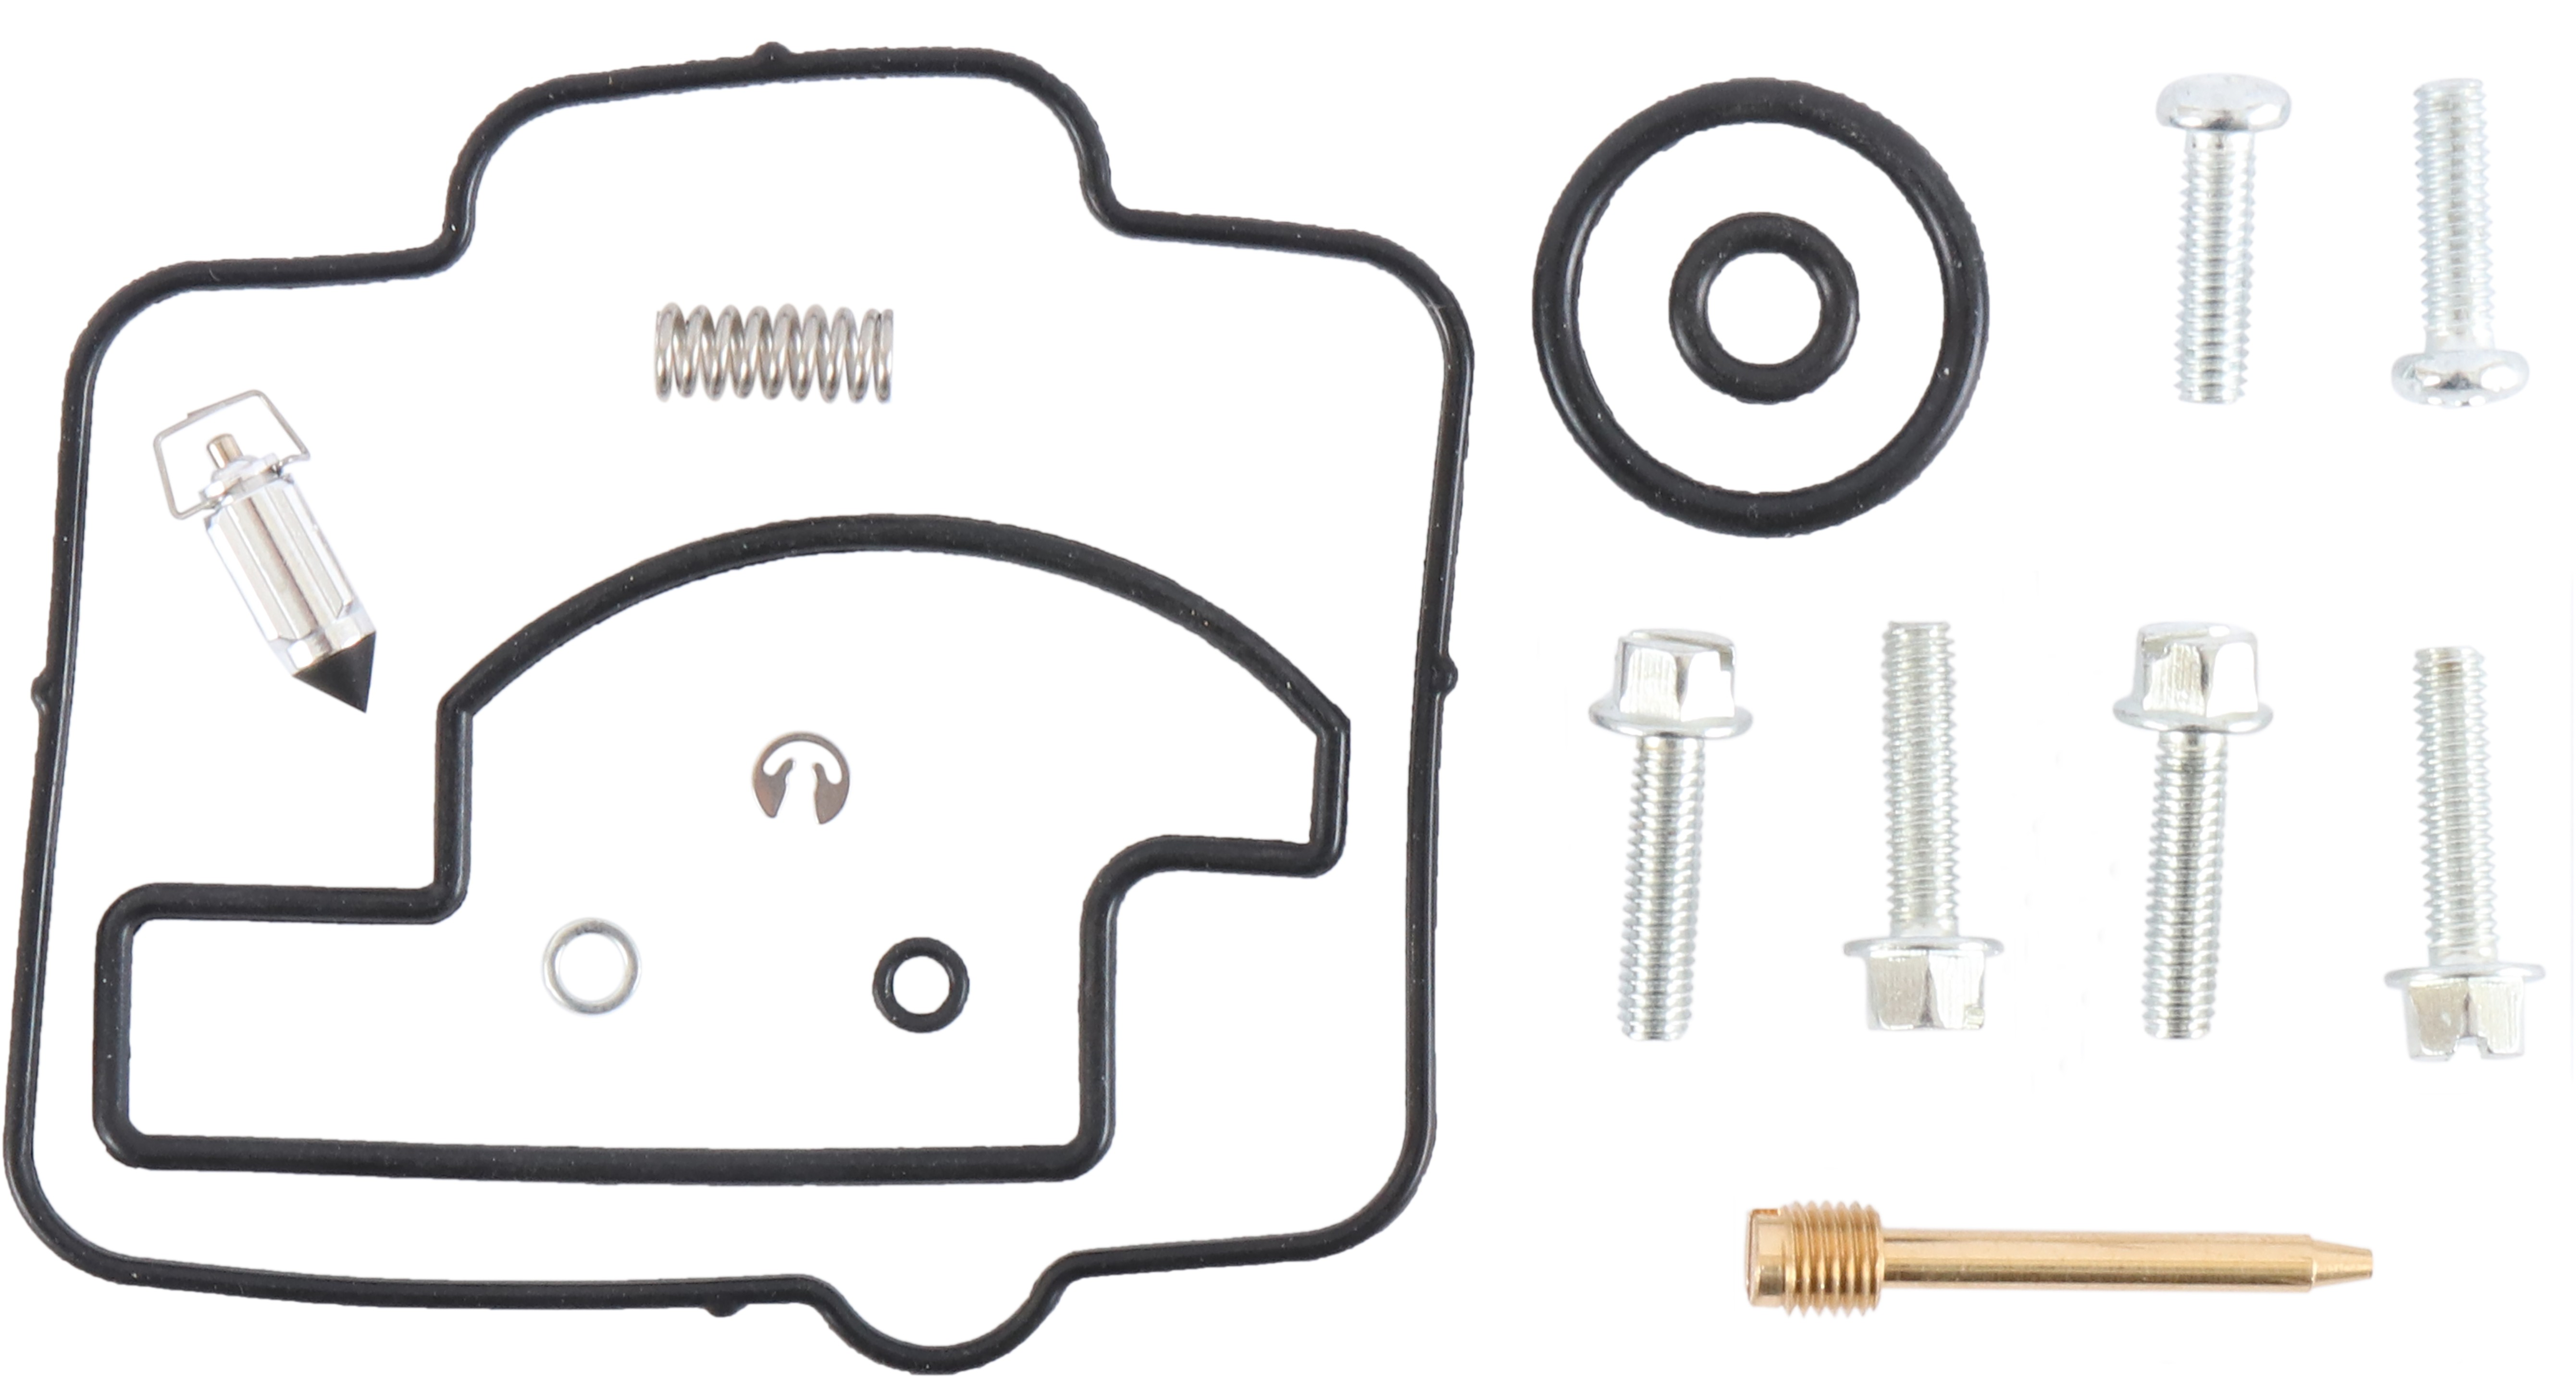 New All Balls Carburetor Kit, Complete 26-1514 for KTM 125 SX 09-17, 150 SX  09-16, 150 XC 10-14, 200 XC 07-09, 200 XC-W 07-16, 250 EXC 04-05, 250 SX